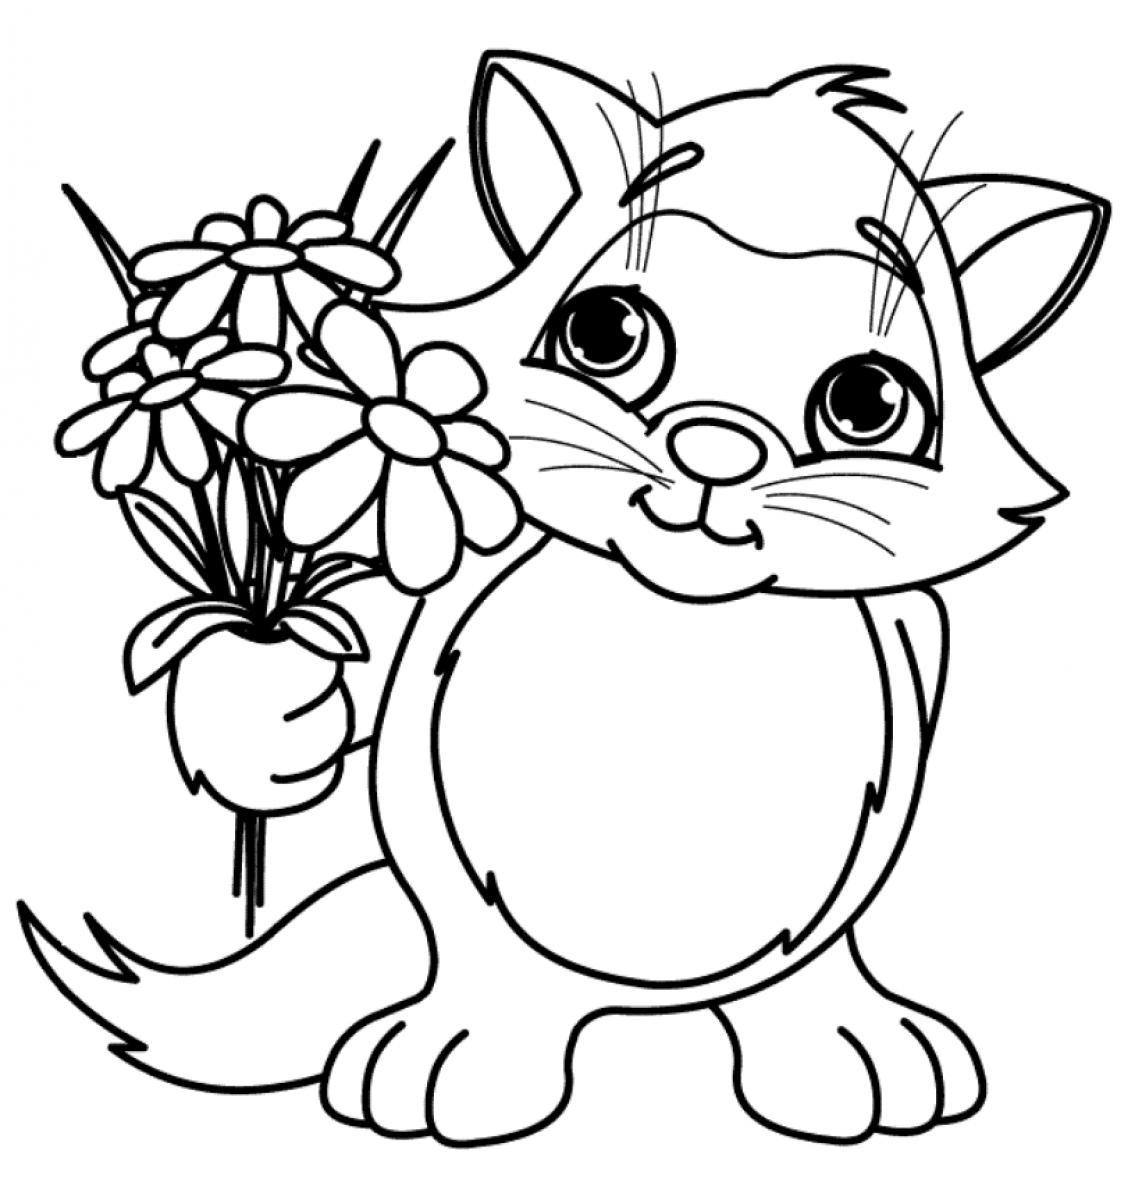 spring coloring pages for kids spring flower coloring pages to download and print for free coloring spring for pages kids